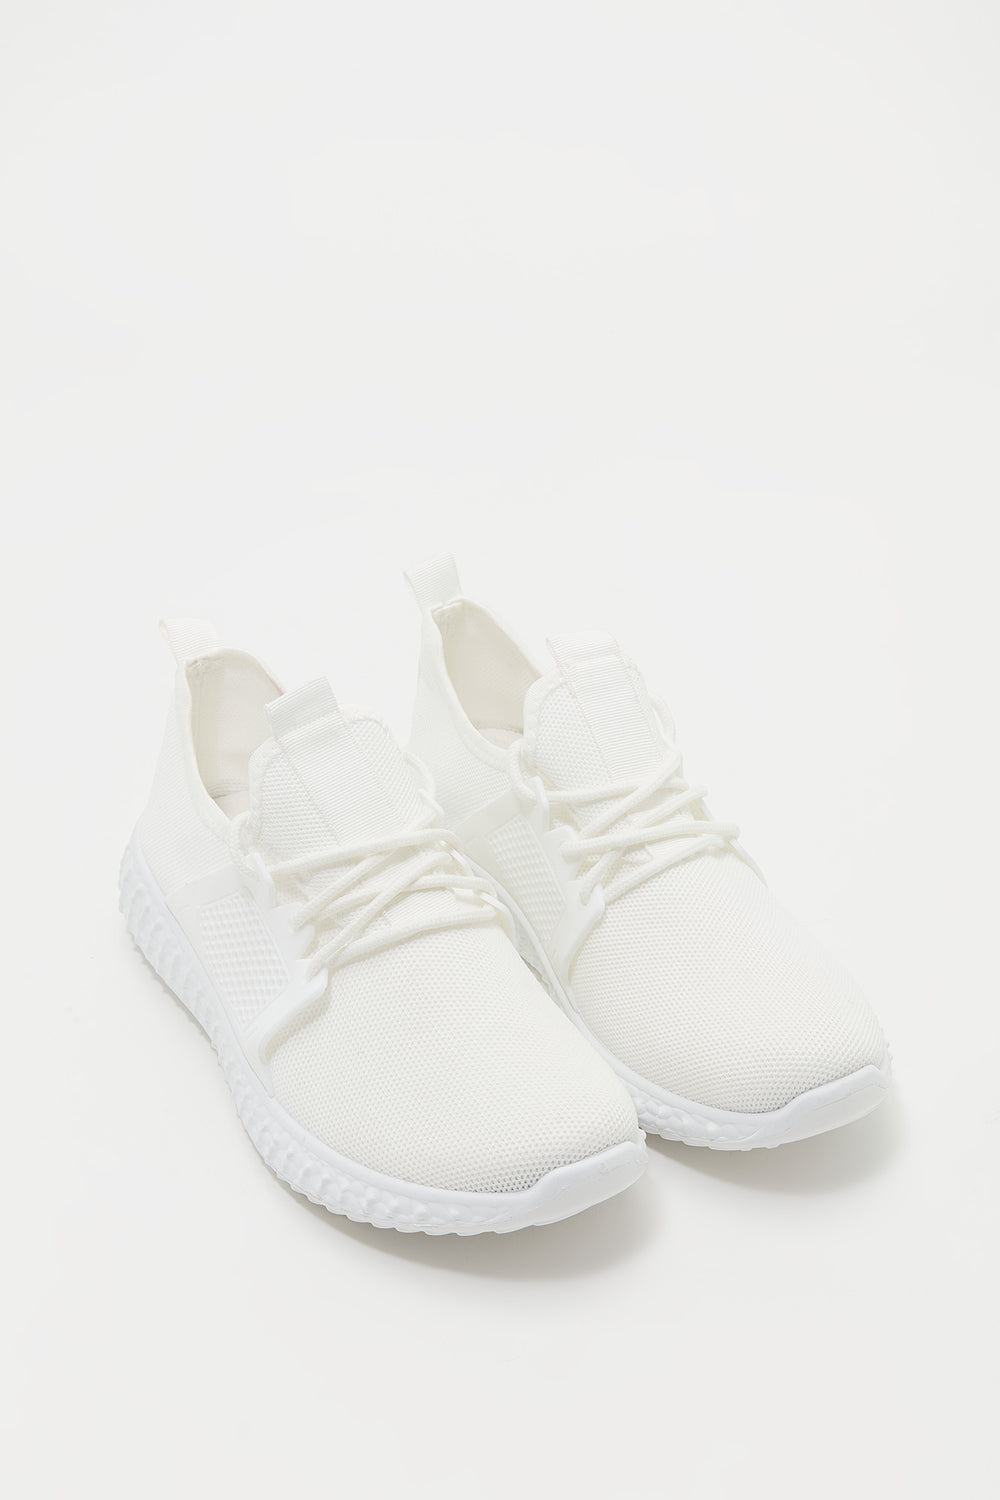 Knit Lace-Up Active Sneaker White